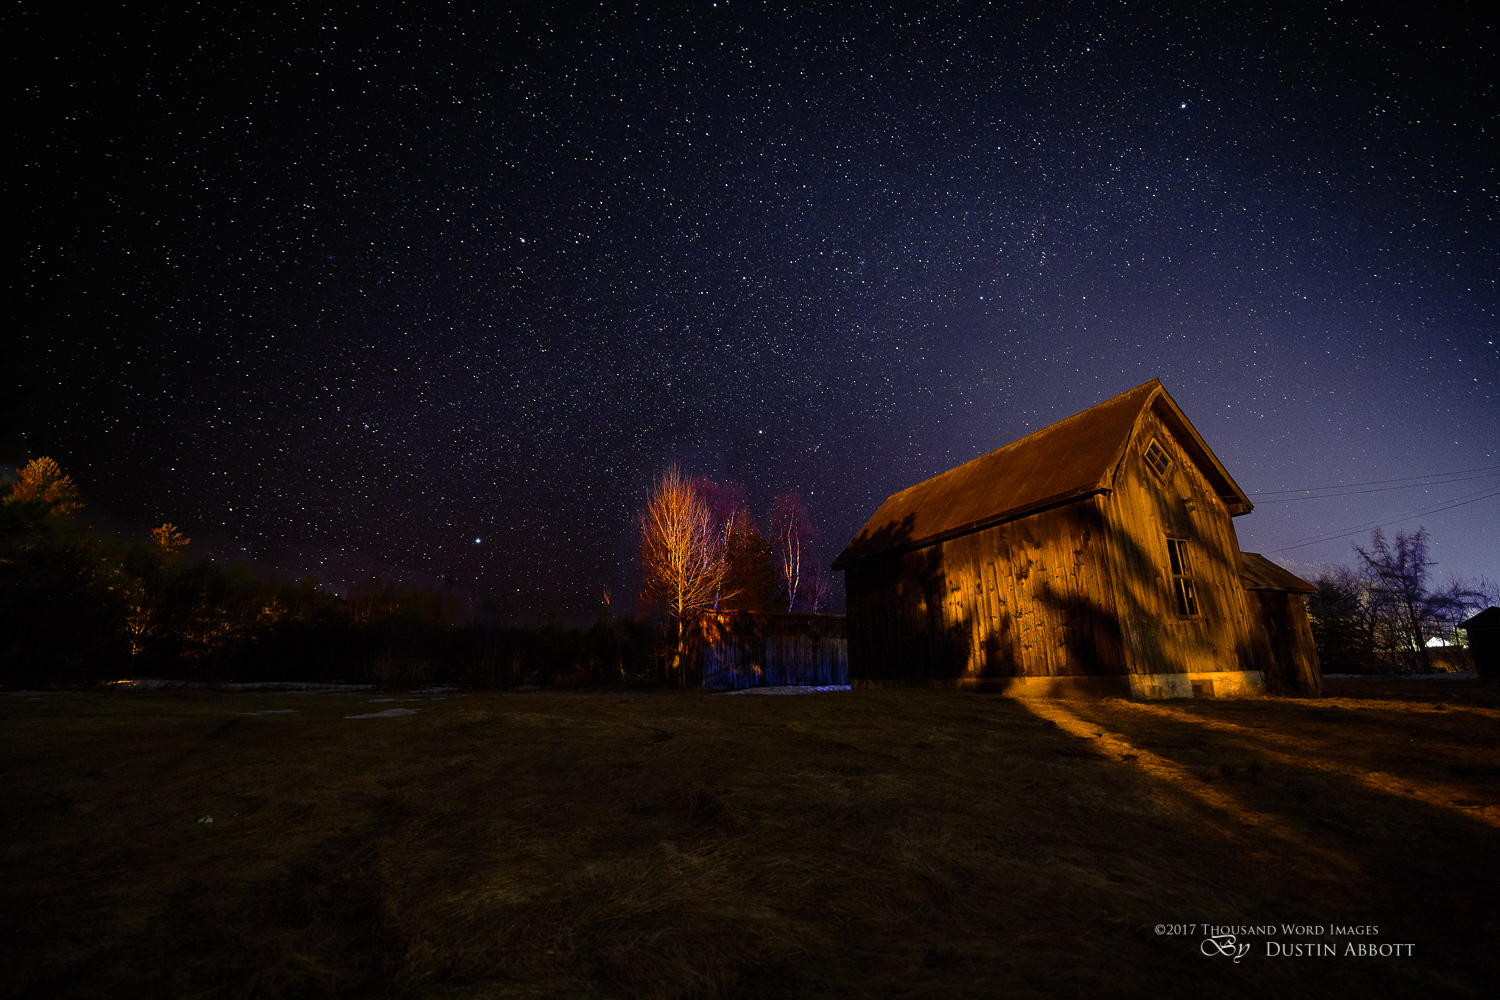 Shoot for the Stars (Rokinon SP 14mm f/2.4)